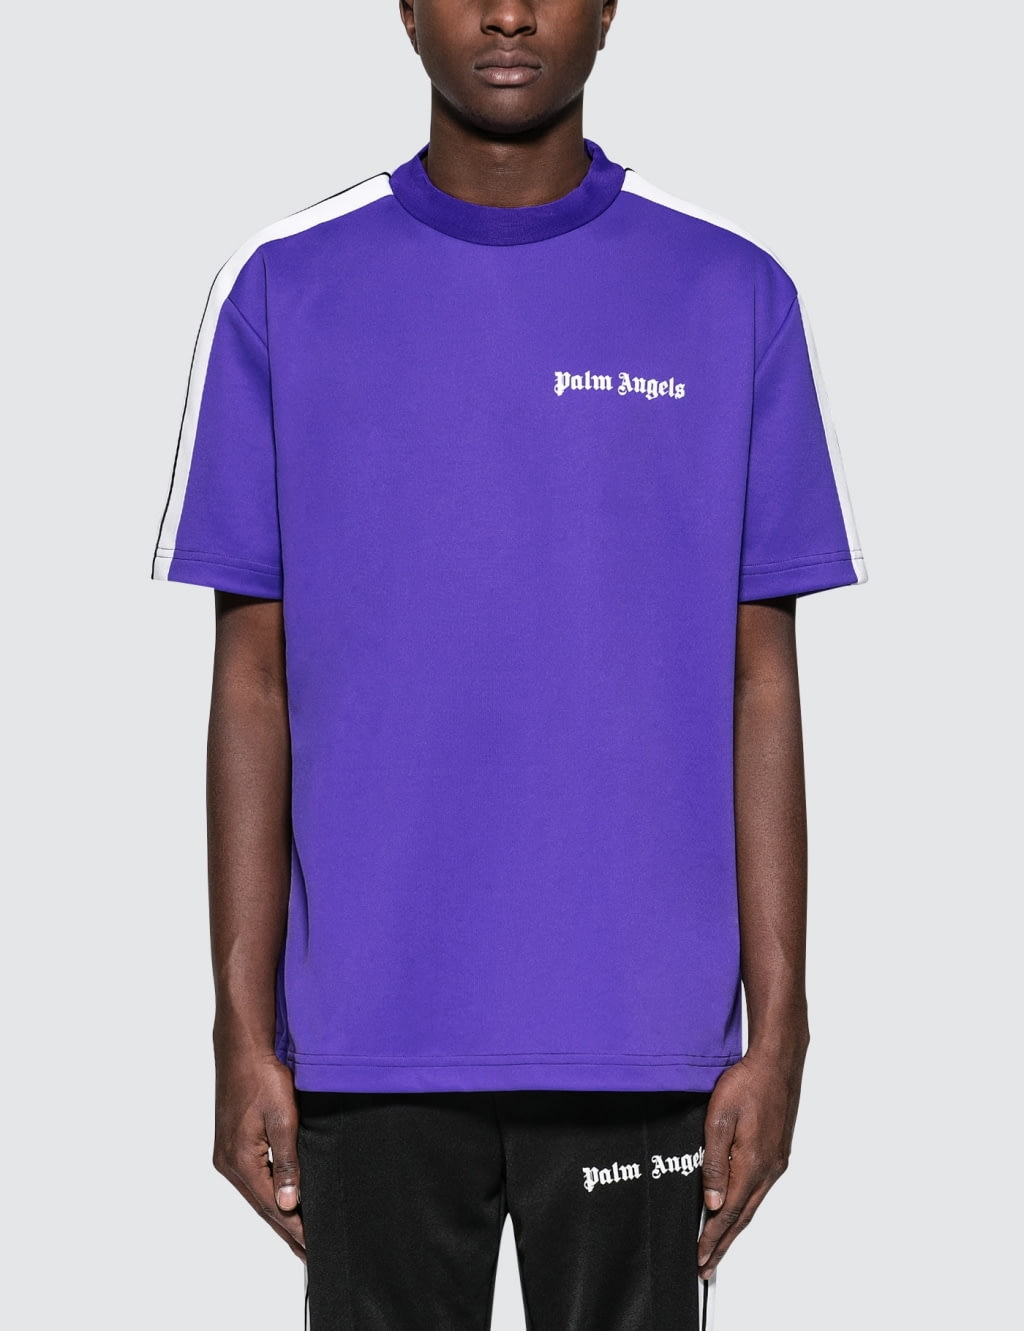 Quality Free Shipping For Sale Track T-shirt Palm Angels Outlet Deals Sale Recommend vDKanxSd3A